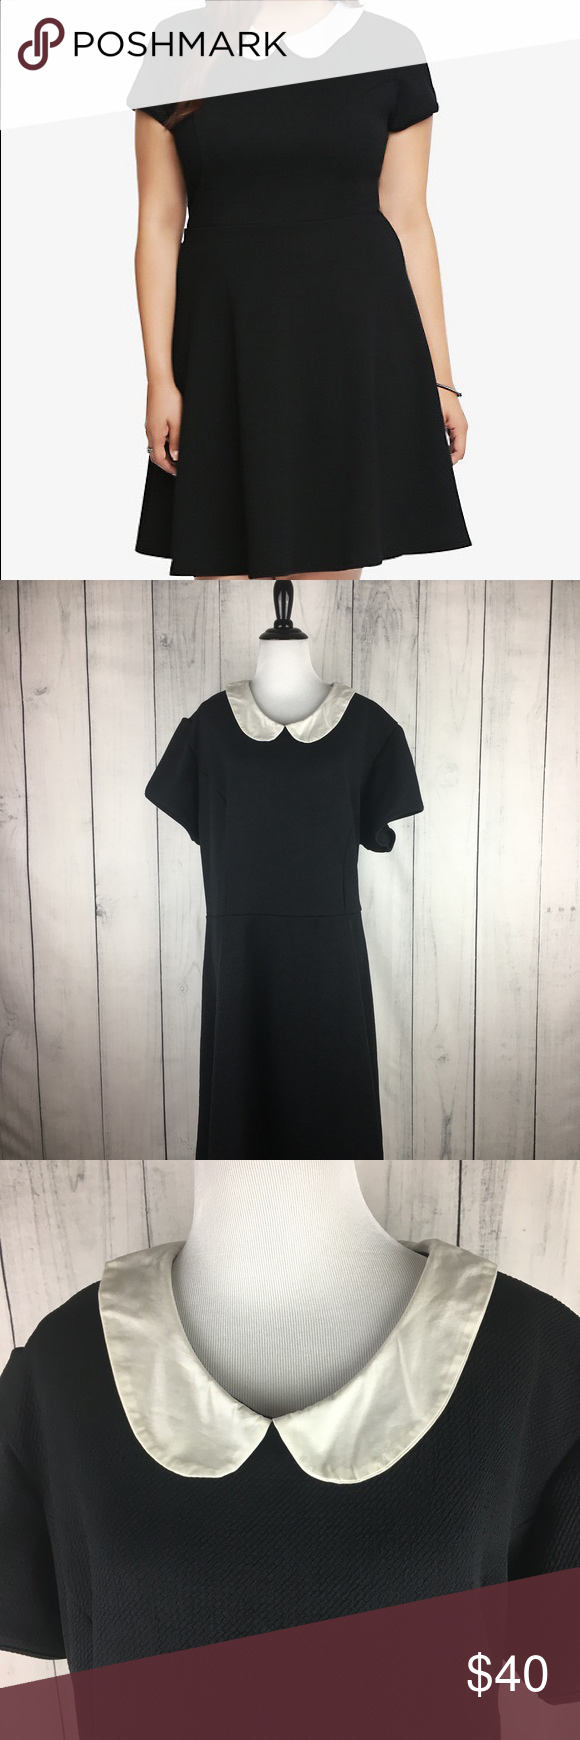 Torrid Textured Black Peter Pan Skater Dress 4 Torrid Textured Black Peter Pan Skater Dress size 4. Excellent condition. Tag untacked on one side as photo'd. torrid Dresses